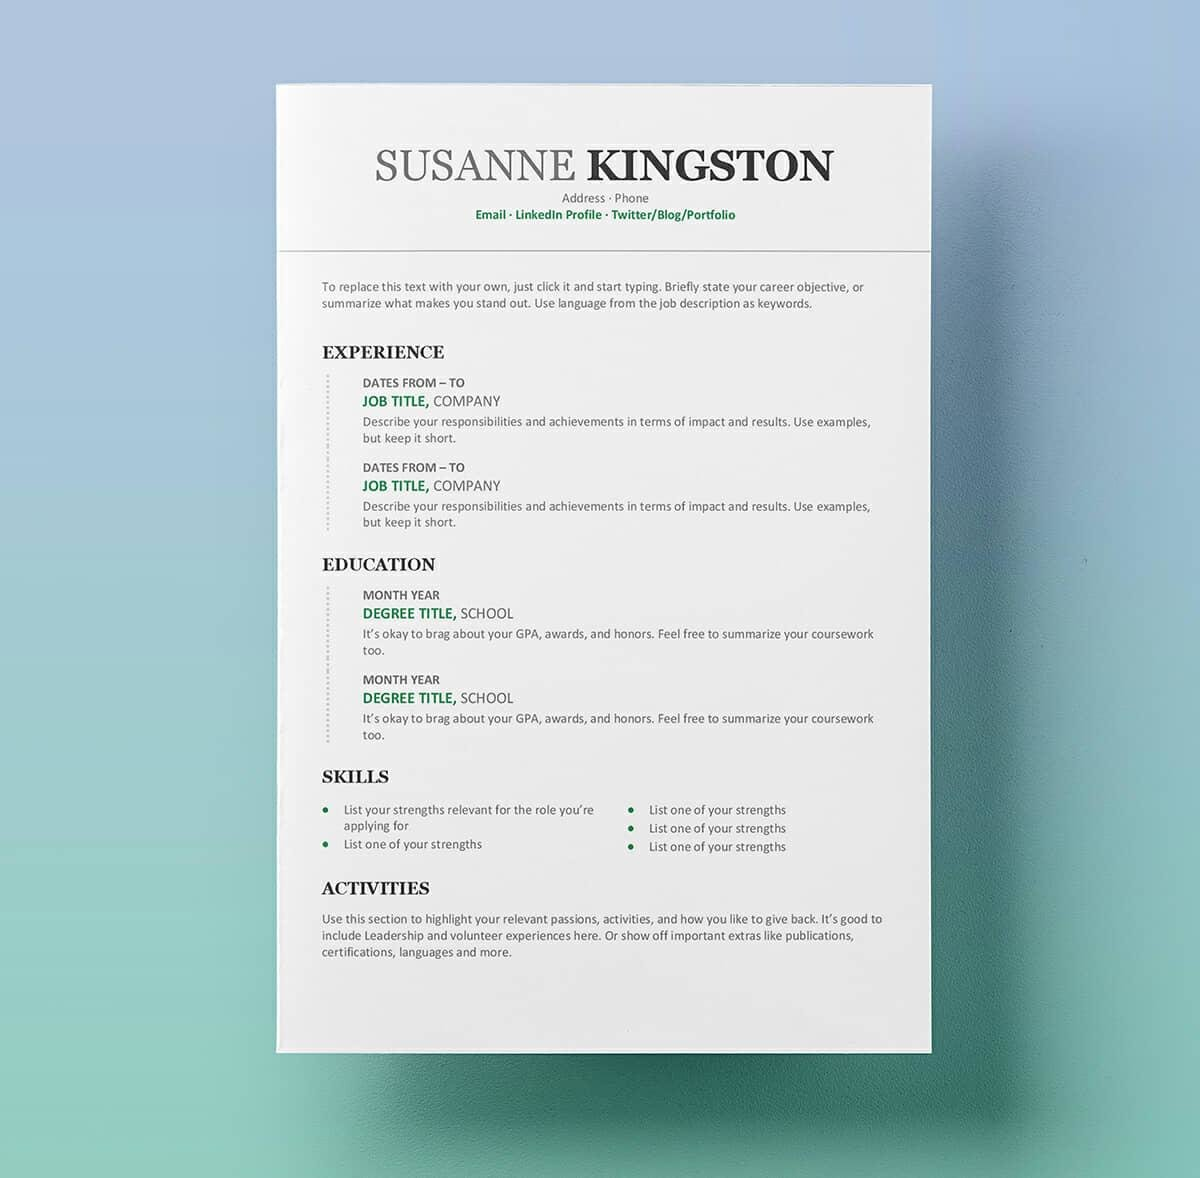 resume templates for word free 15 examples for download - Resume Template For Free